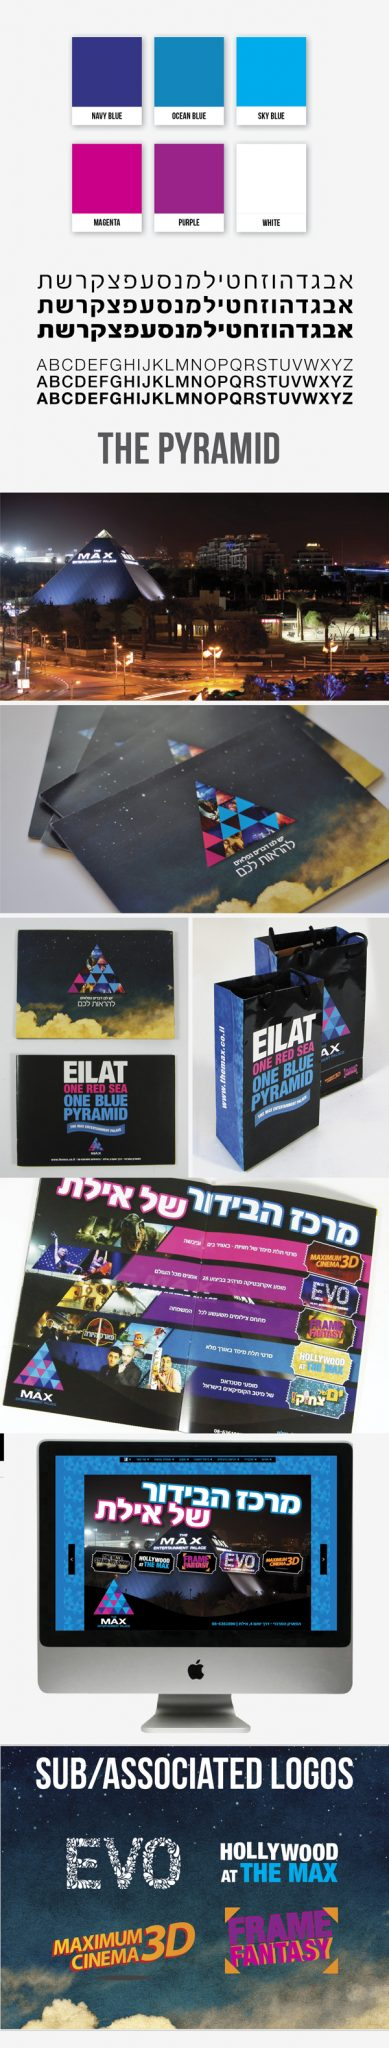 pyramid, logos, branding, paper bag, booklet, attraction, print, web